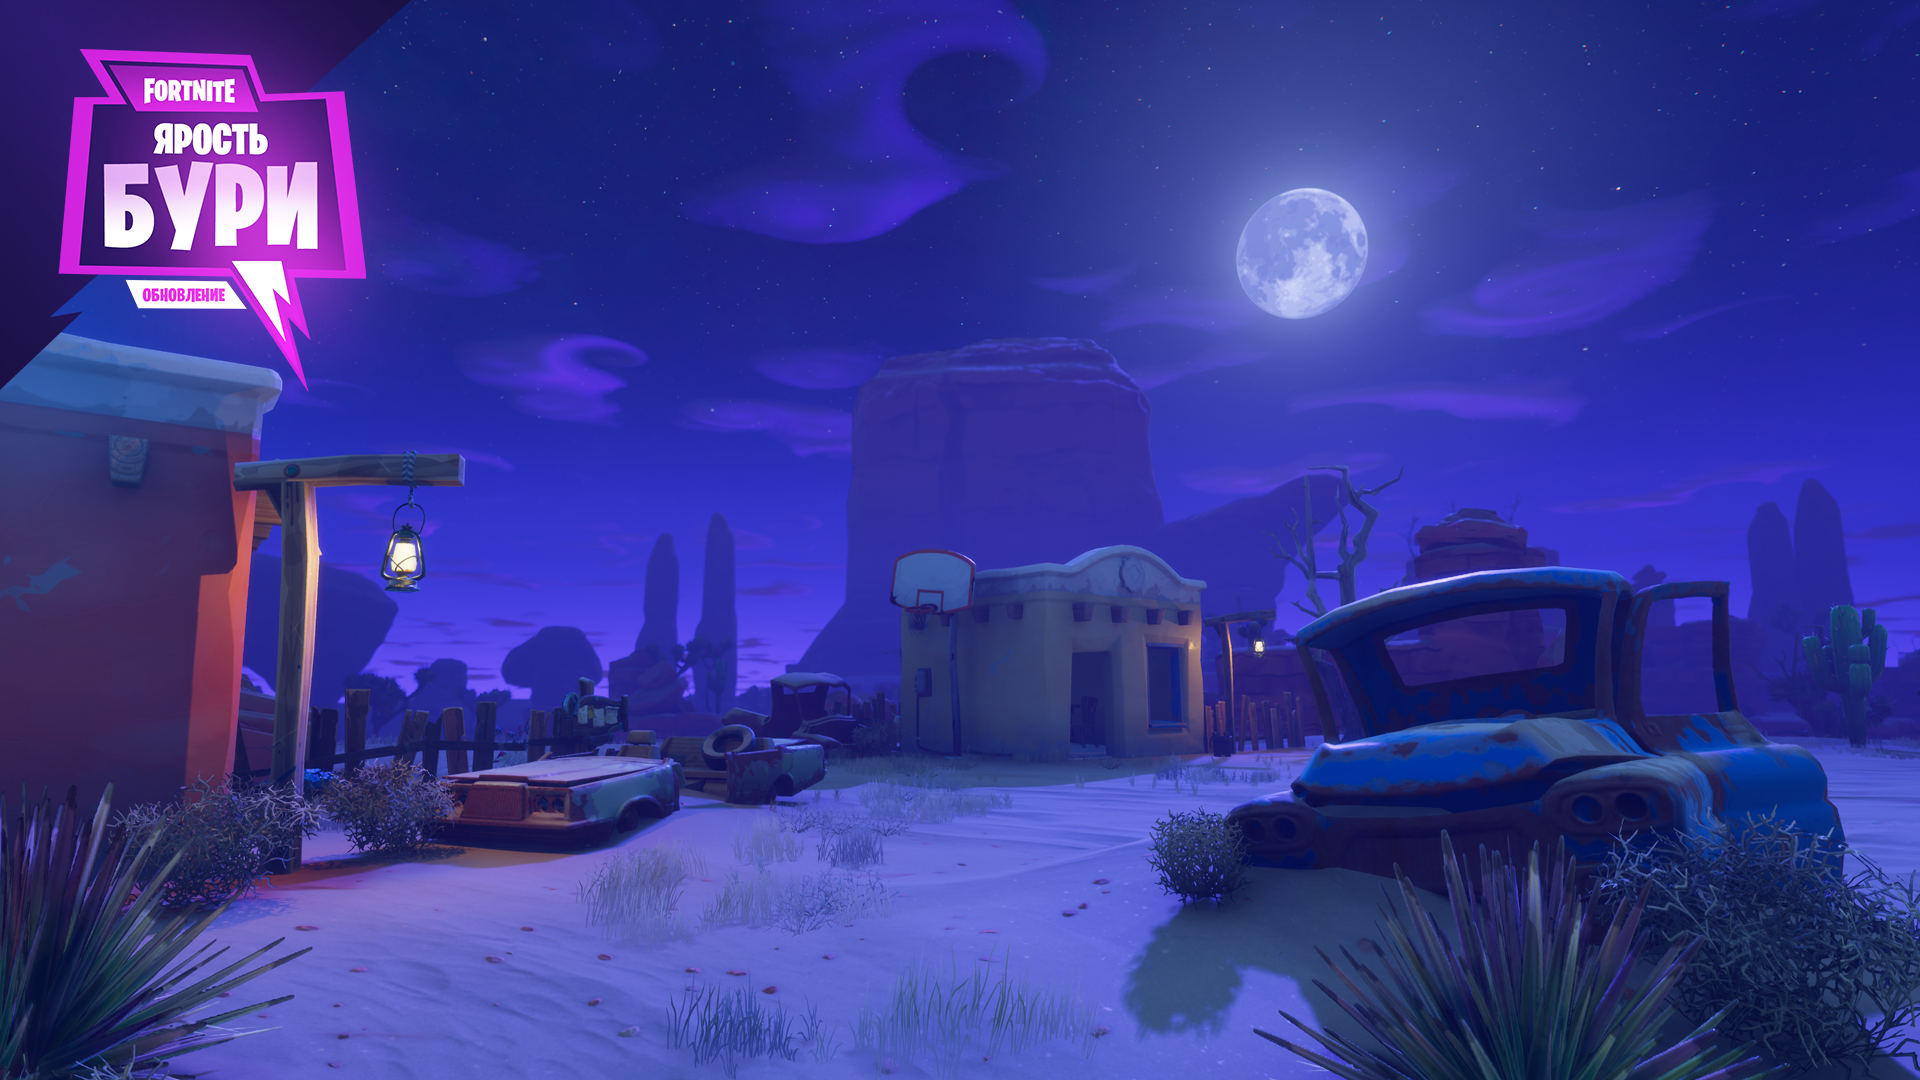 Fortnite%2Fblog%2Fsurvive-the-storm---release-notes%2FRUS_2-Canny-Valley-1920x1080-51dc076def637a3c00c75bfd6155d1130ea2354f